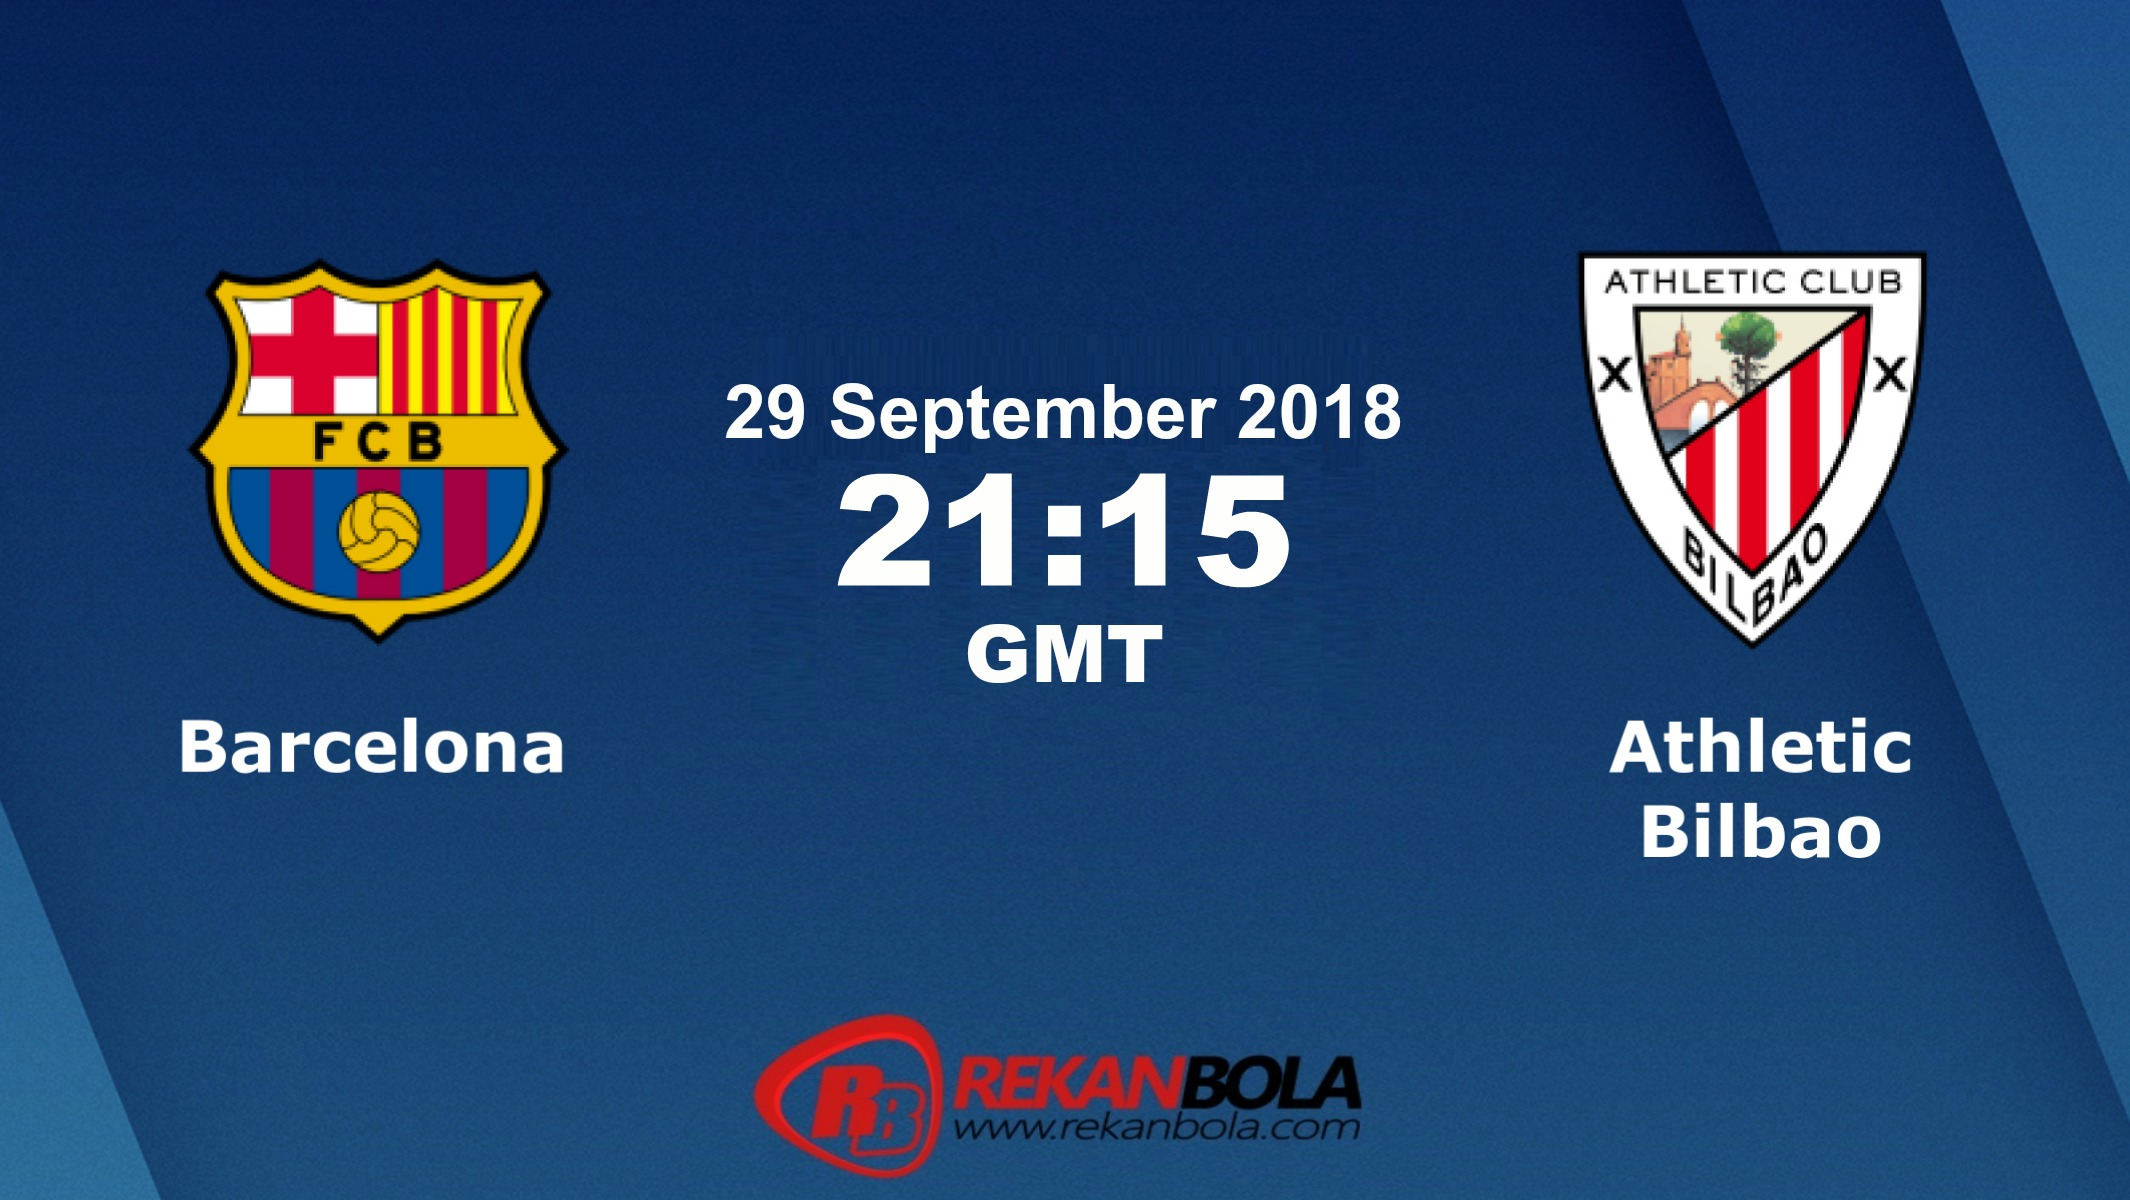 Nonton Siaran Live Streaming Barcelona Vs Bilbao 29 September 2018